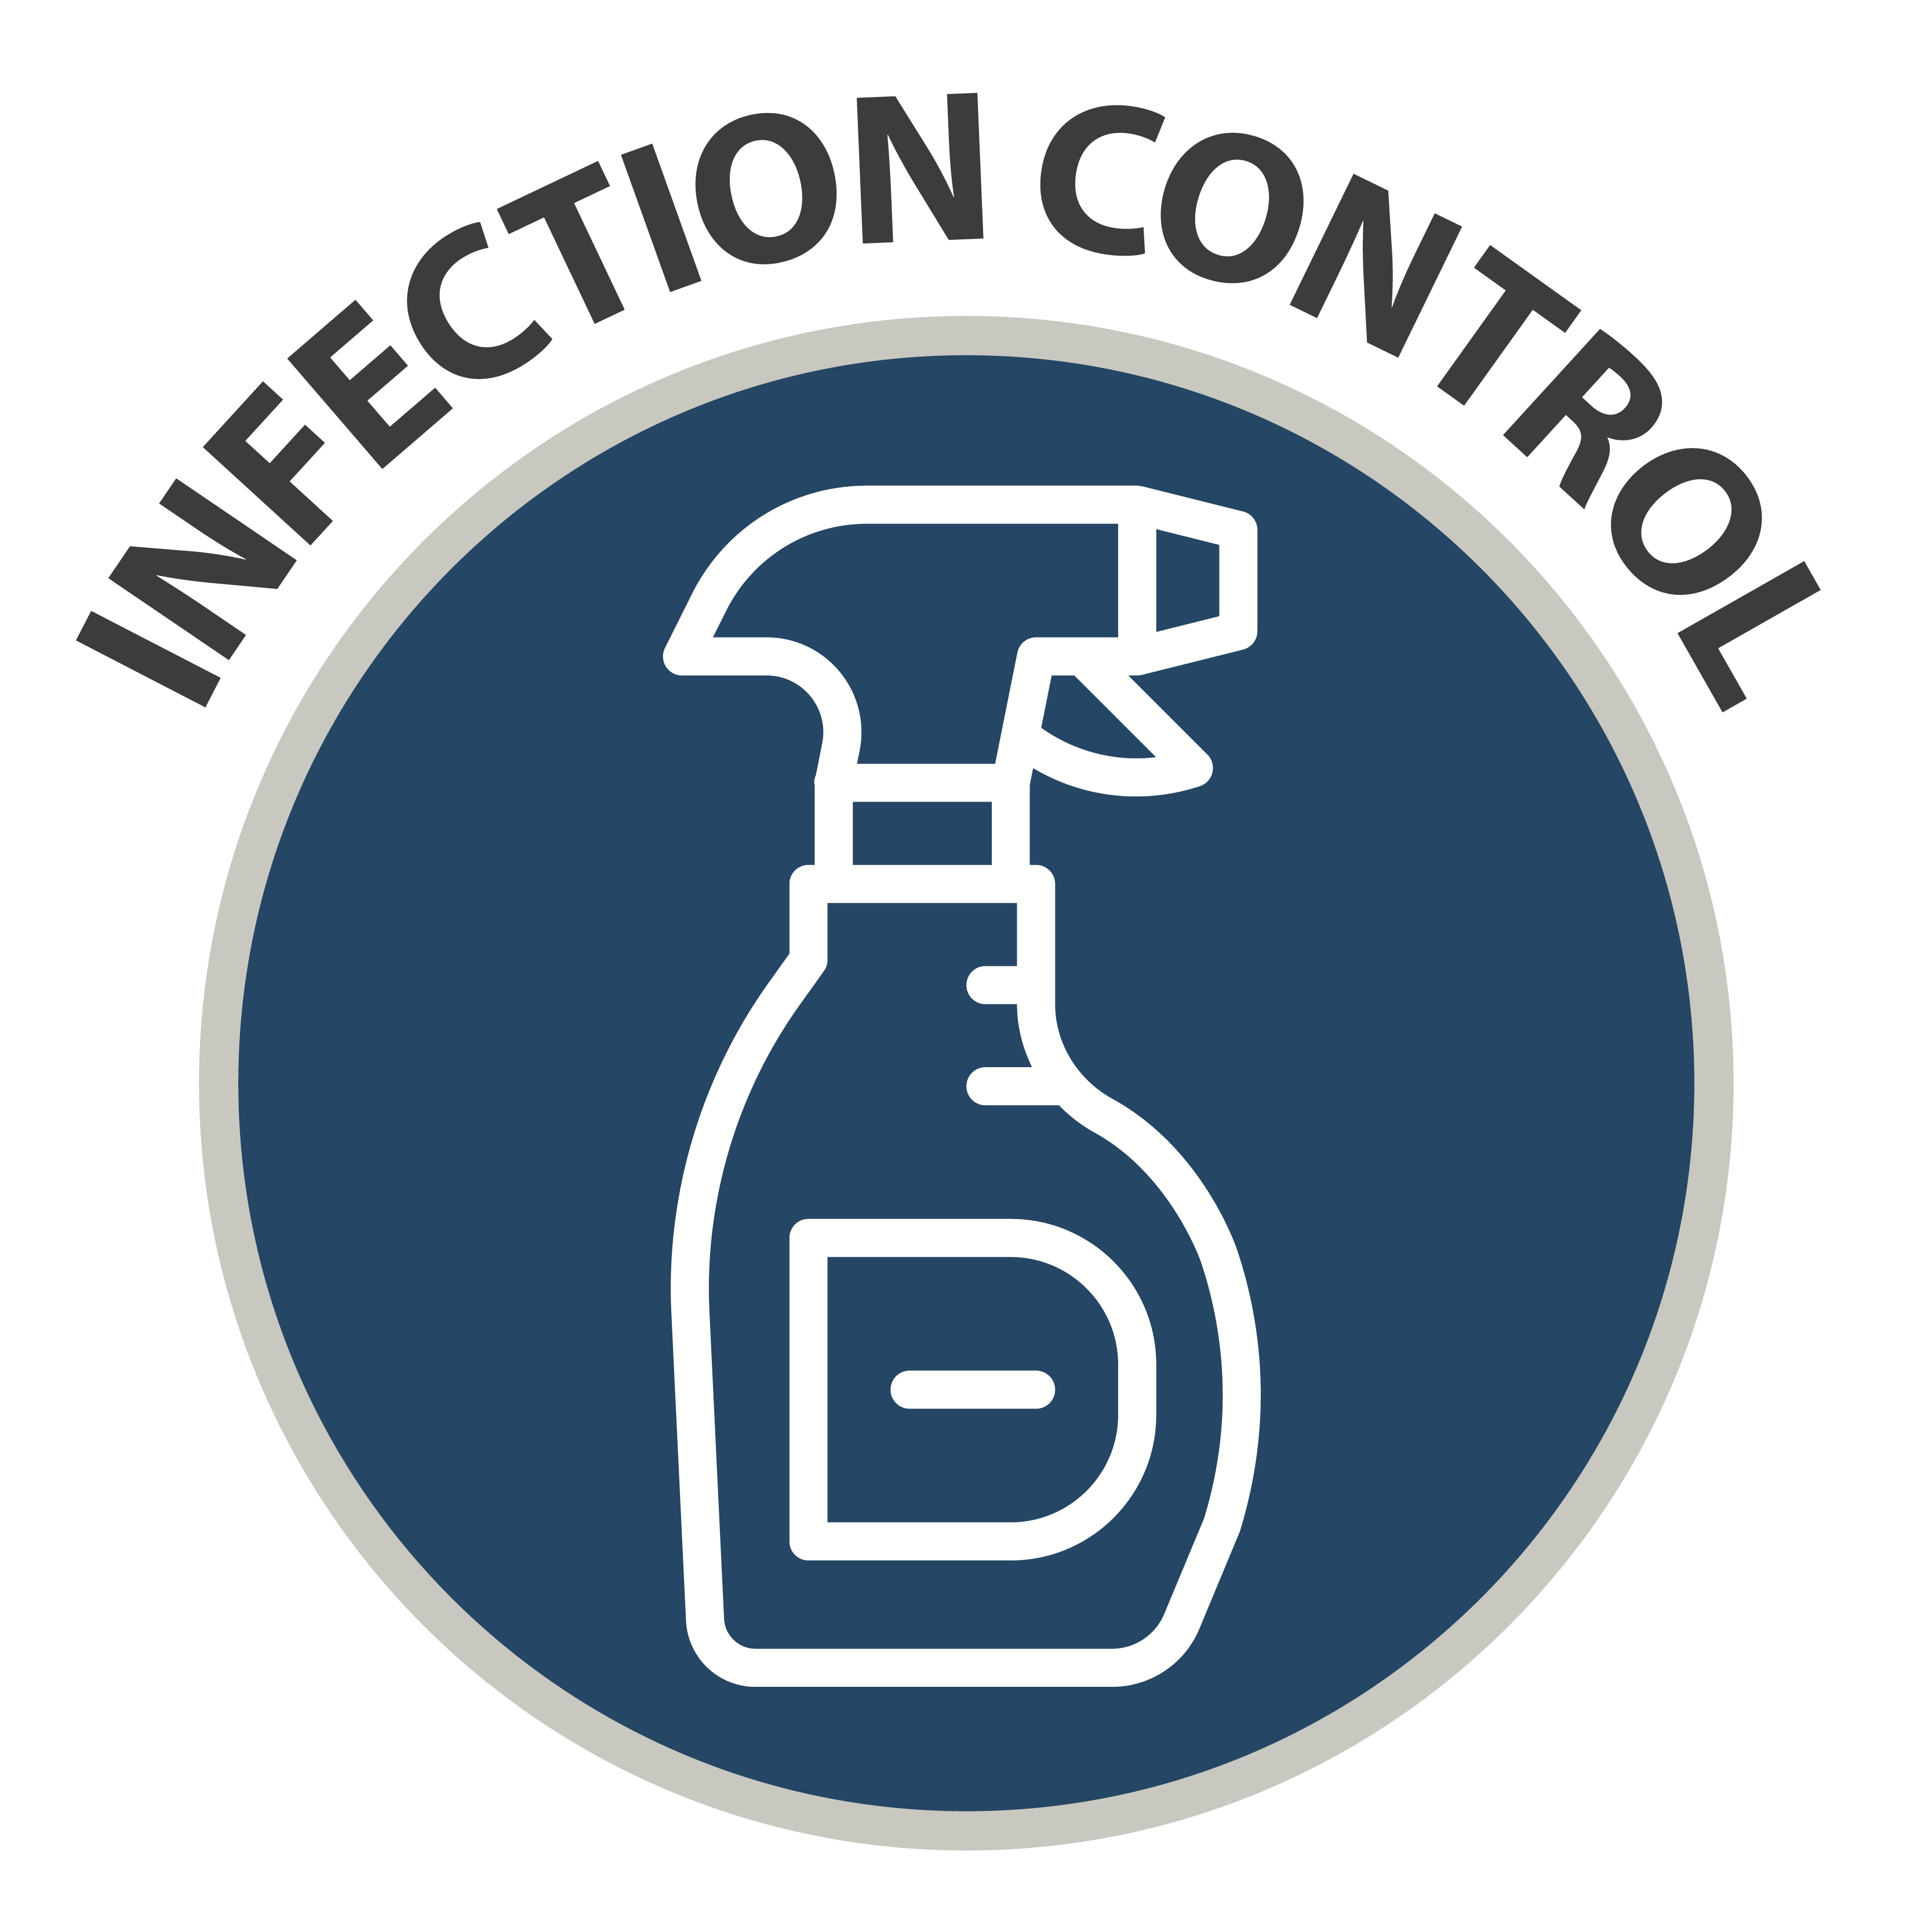 Infection Control - icon of spray bottle